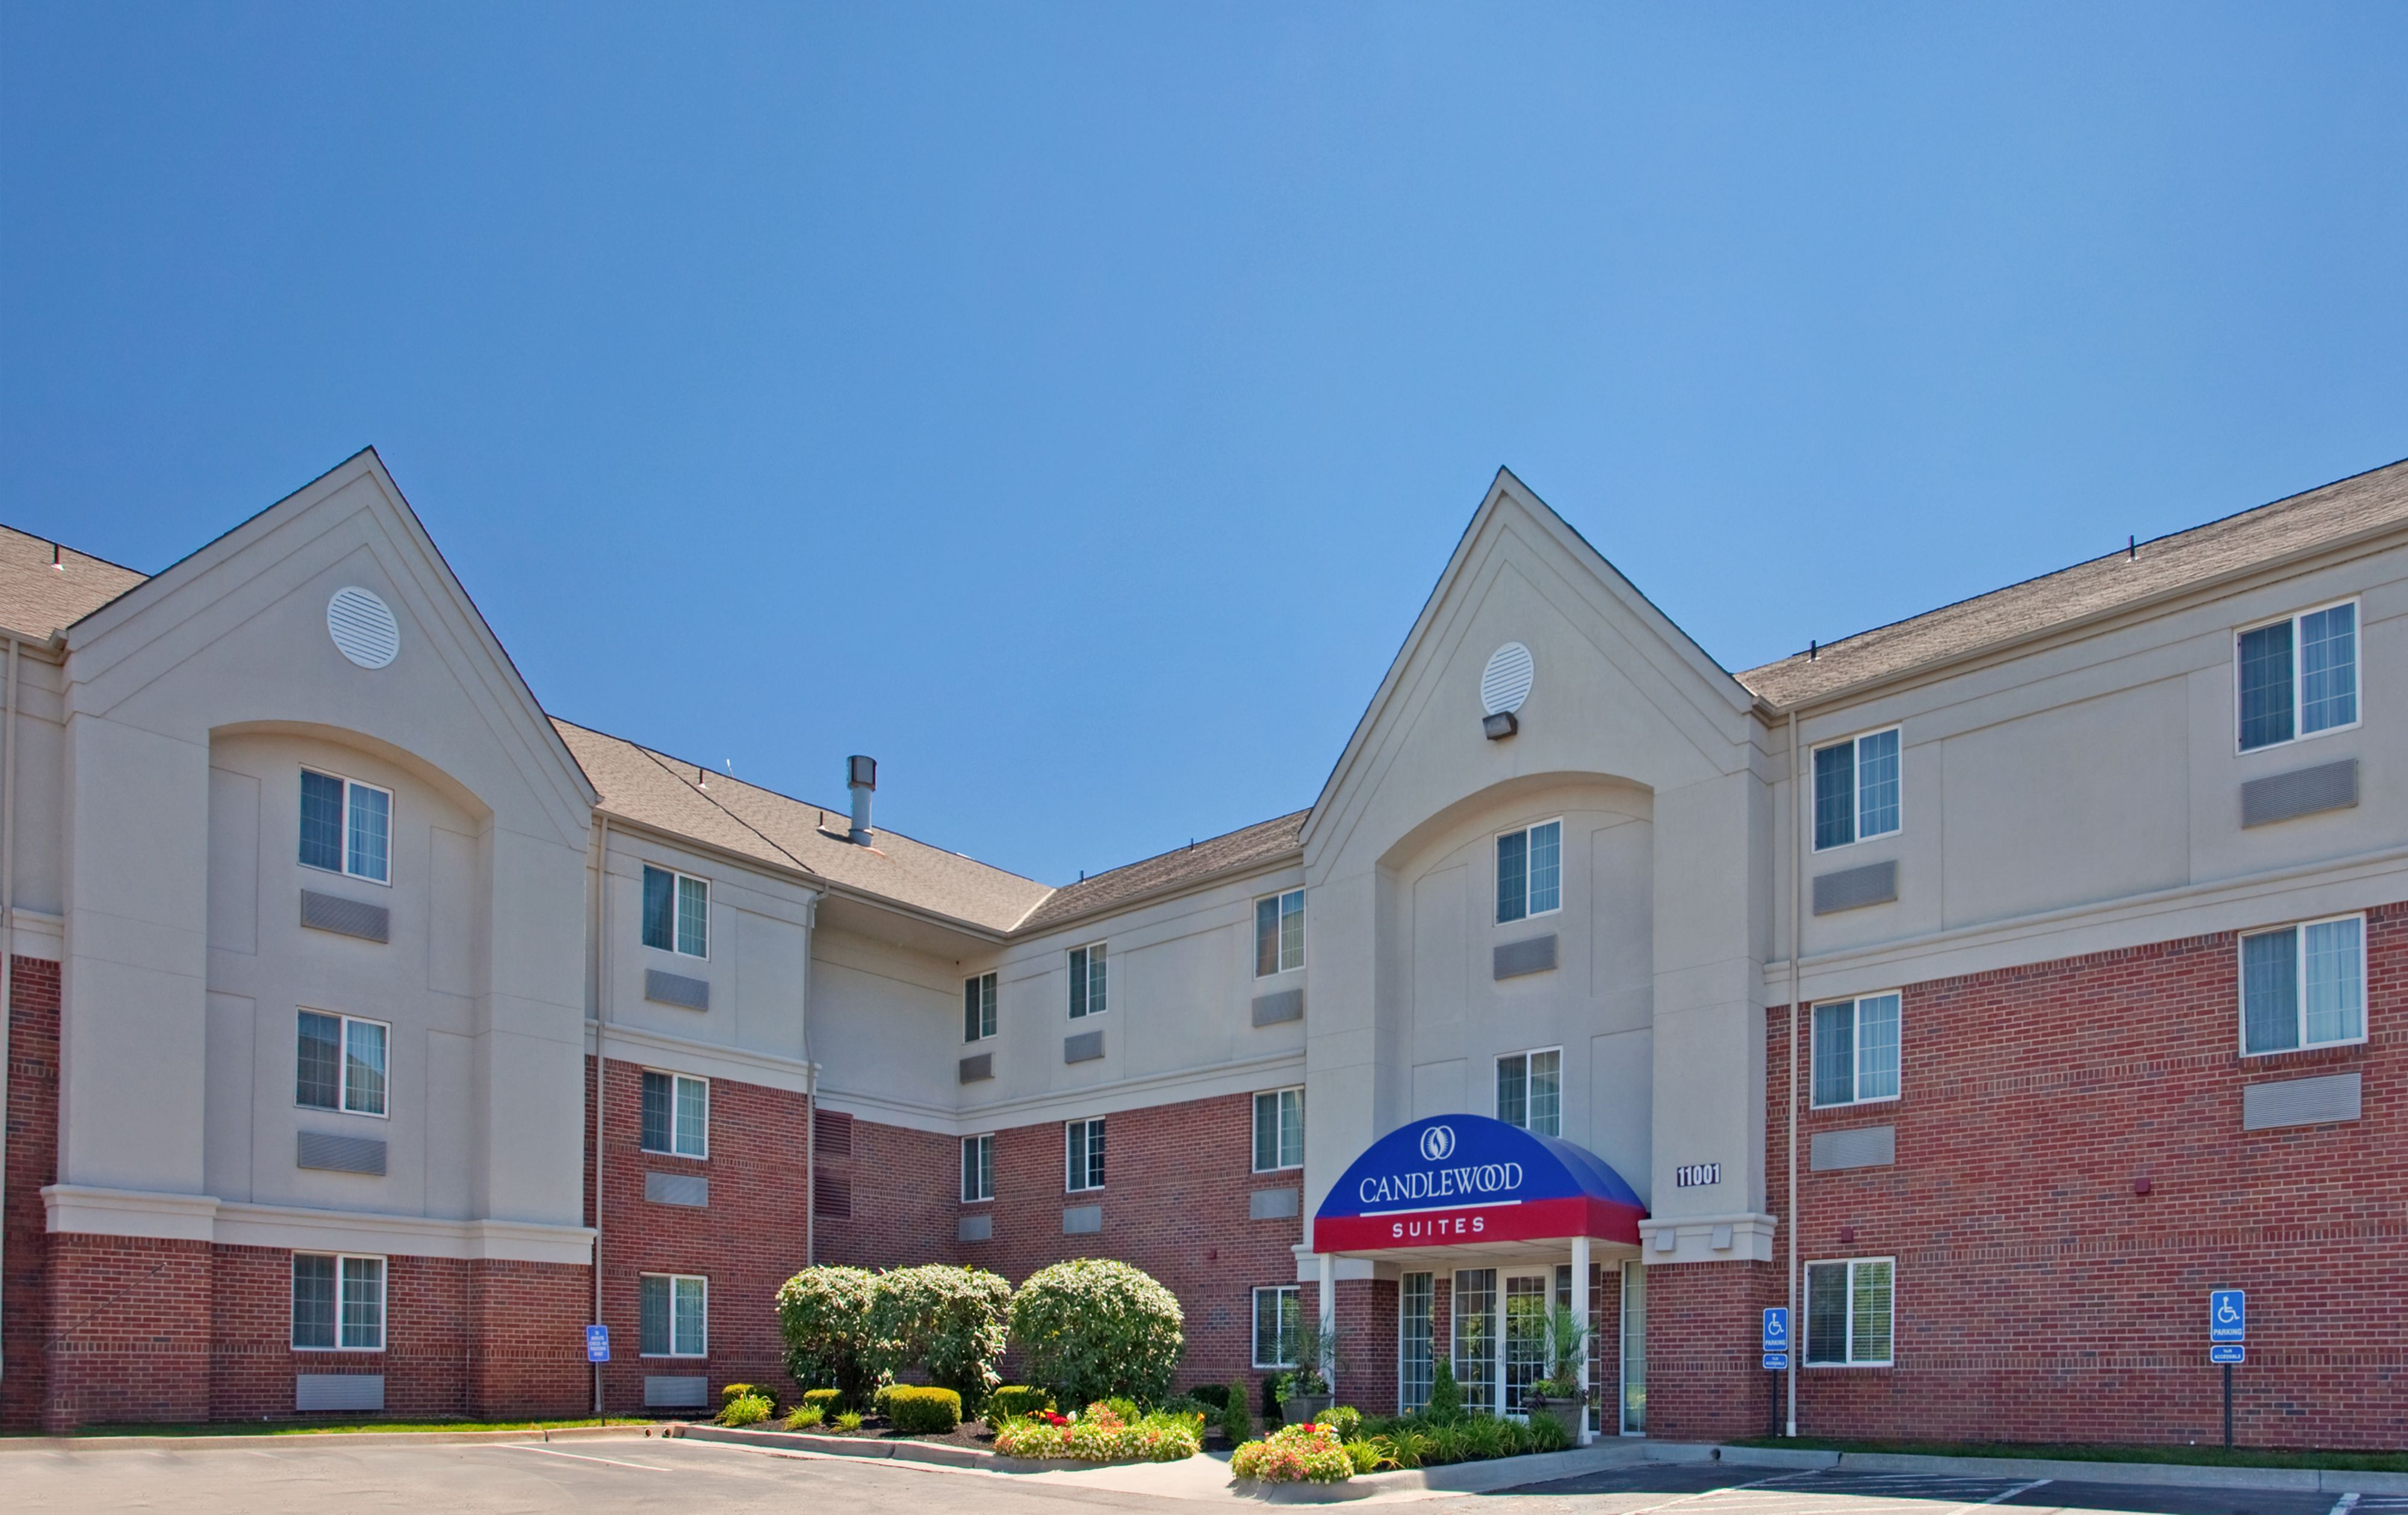 Candlewood Suites Junction City/Ft. Riley image 5